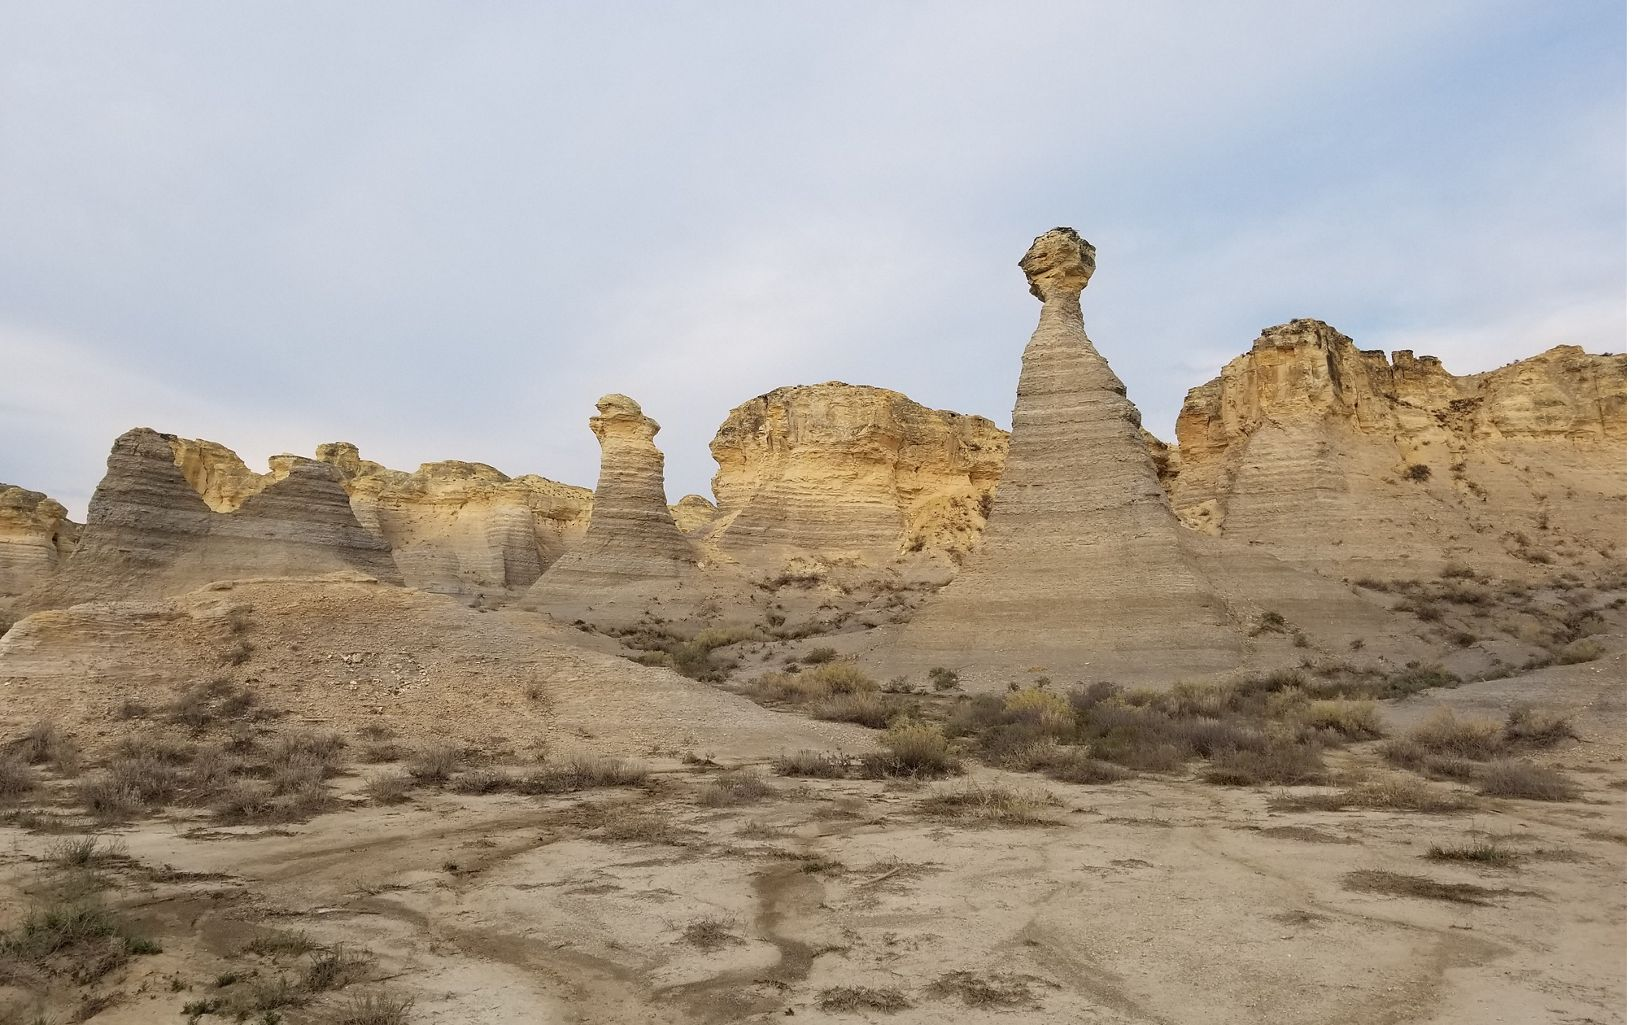 at Little Jerusalem Badlands State Park in western Kansas. TNC owns the property and has partnered with the state of Kansas to offer public access.